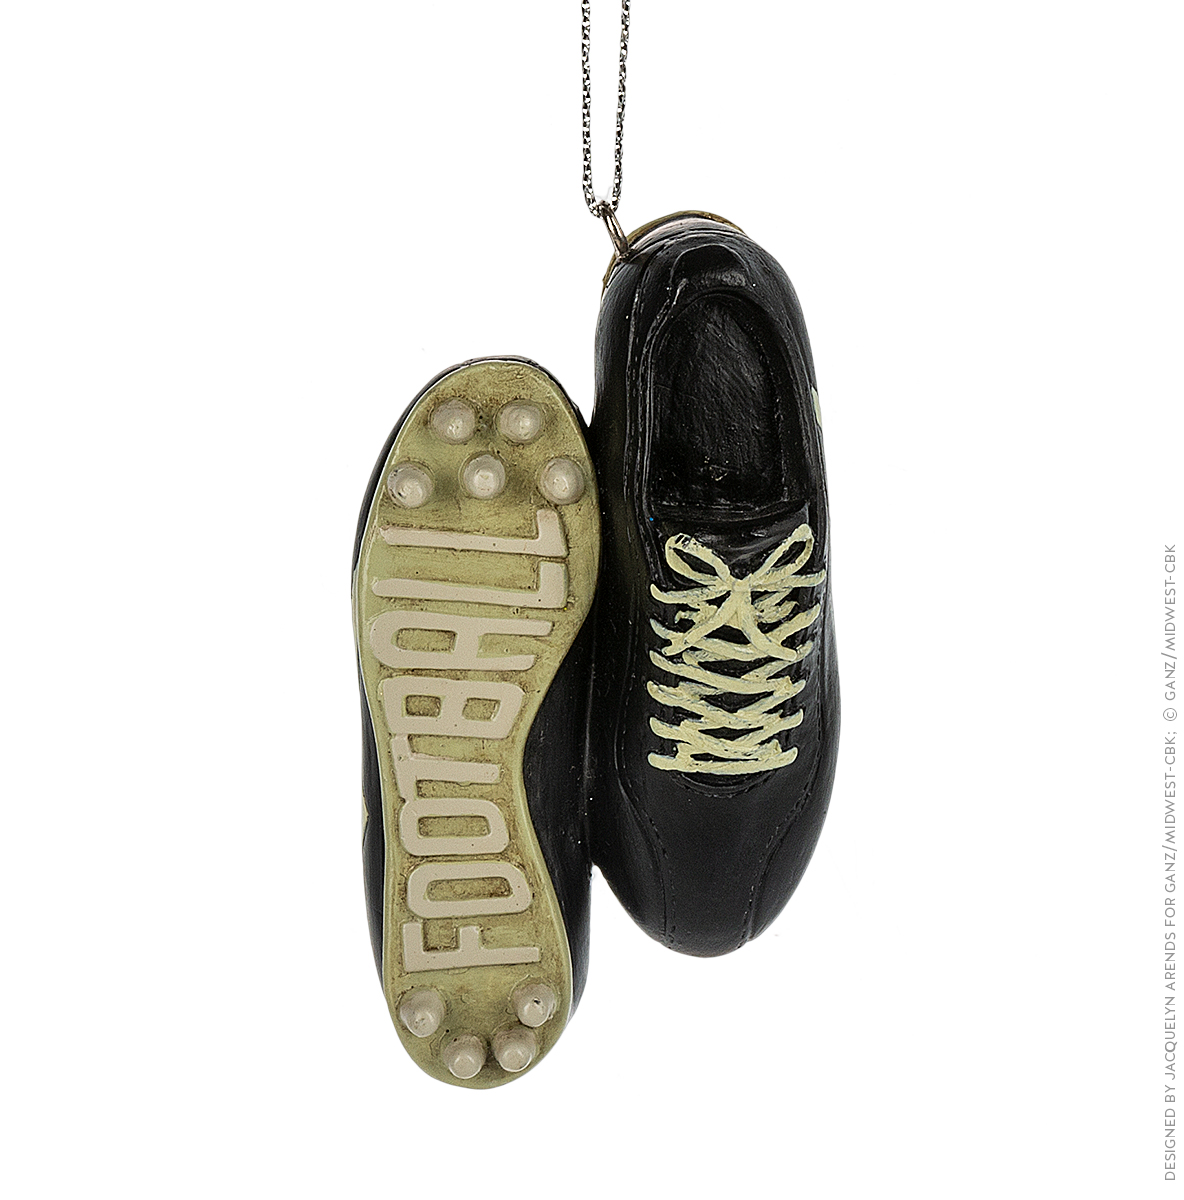 Specialty Ornaments Football Shoes ornament by Jacquelyn Arends; © Ganz/Midwest-CBK 2019